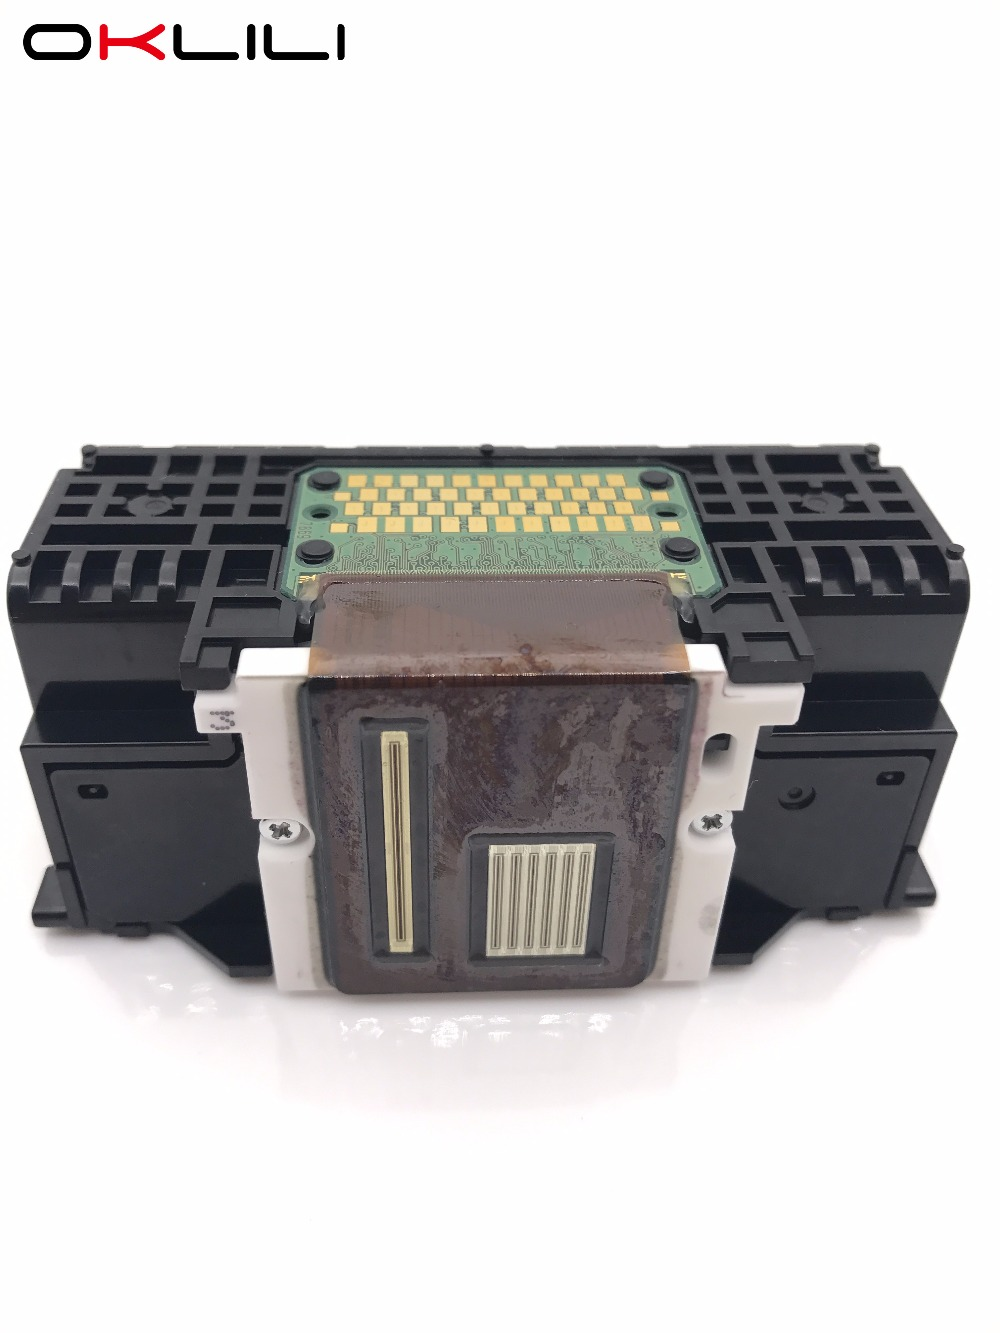 QY6 0082 Printhead Print Head Printer Head for Canon iP7210 iP7220 iP7250 MG5420 MG5450 MG5520 MG5550